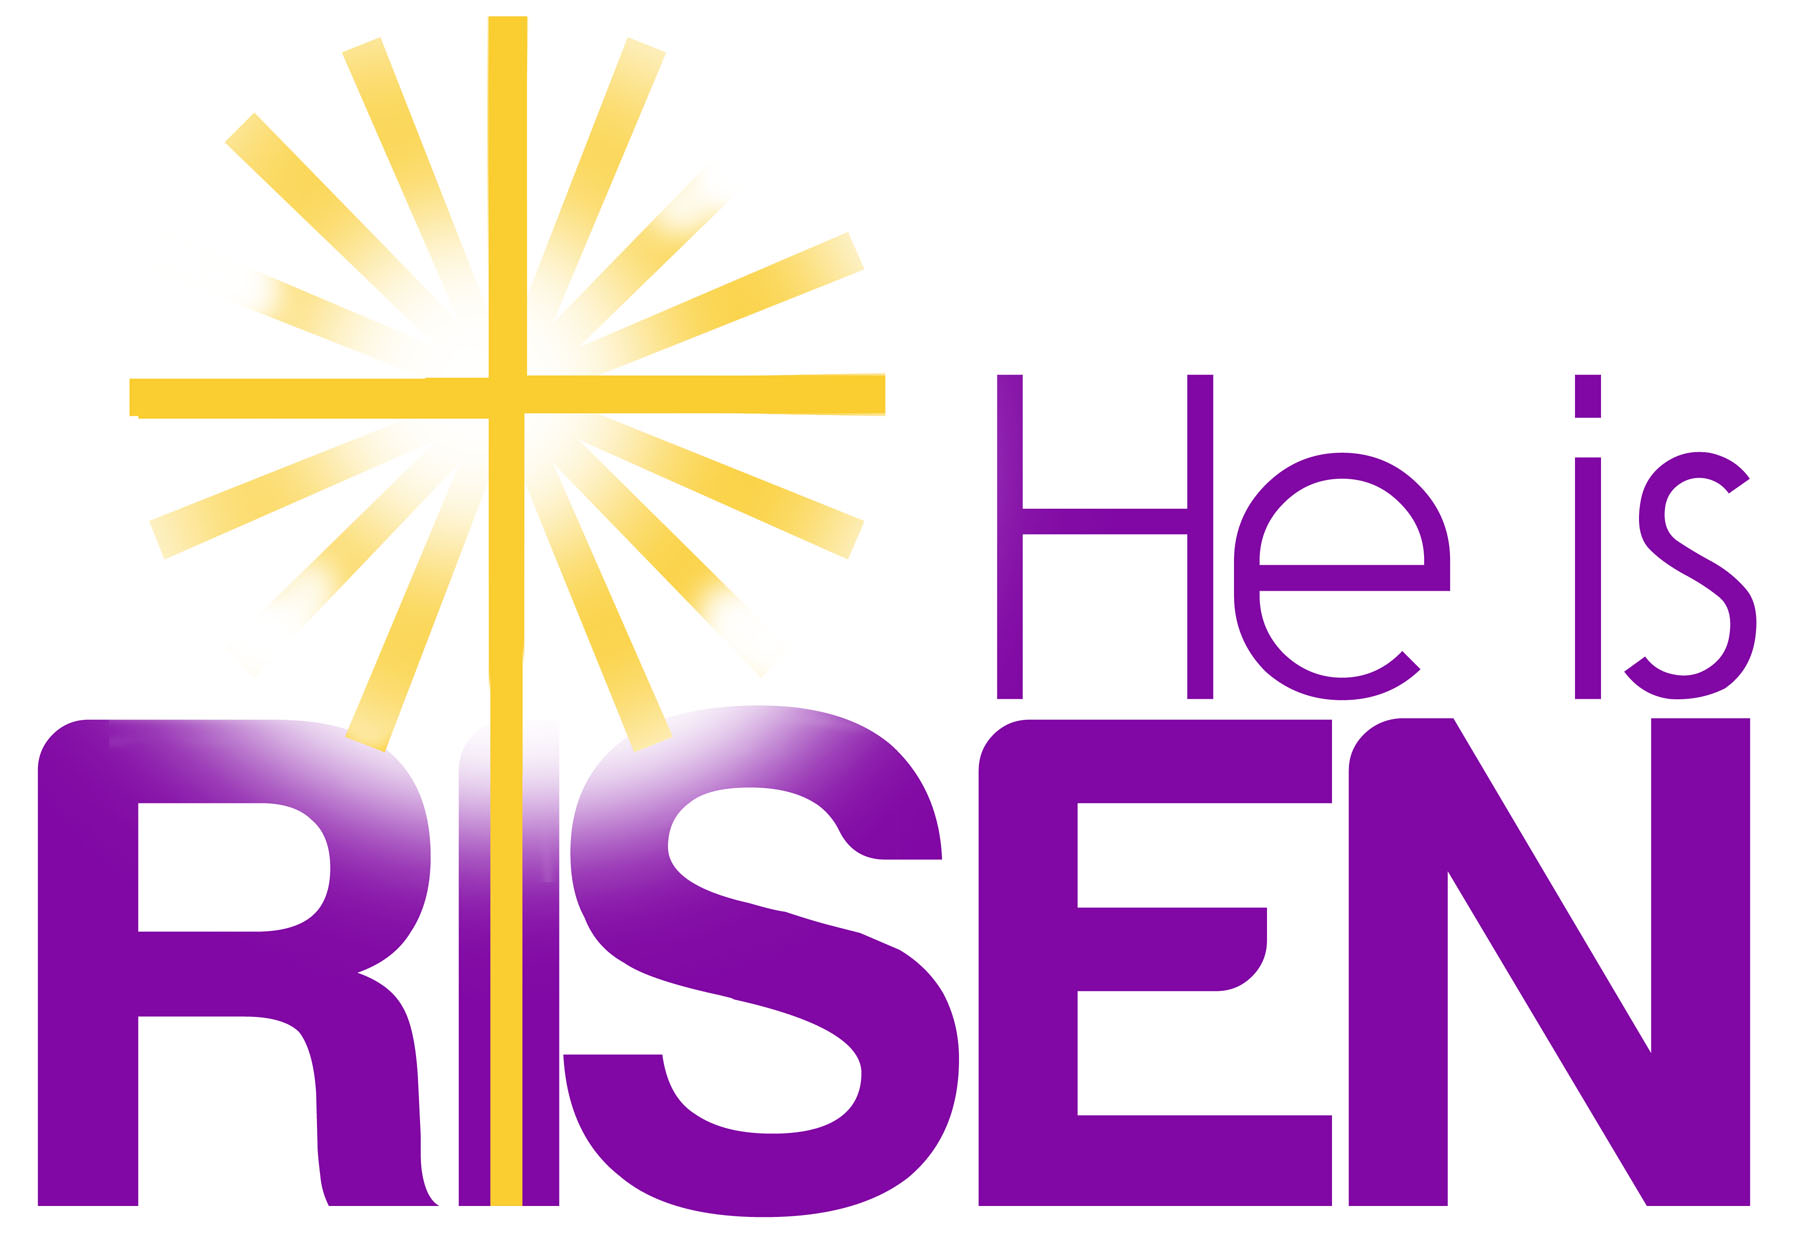 1800x1237 Christian Easter Images Clip Art Hd Easter Images